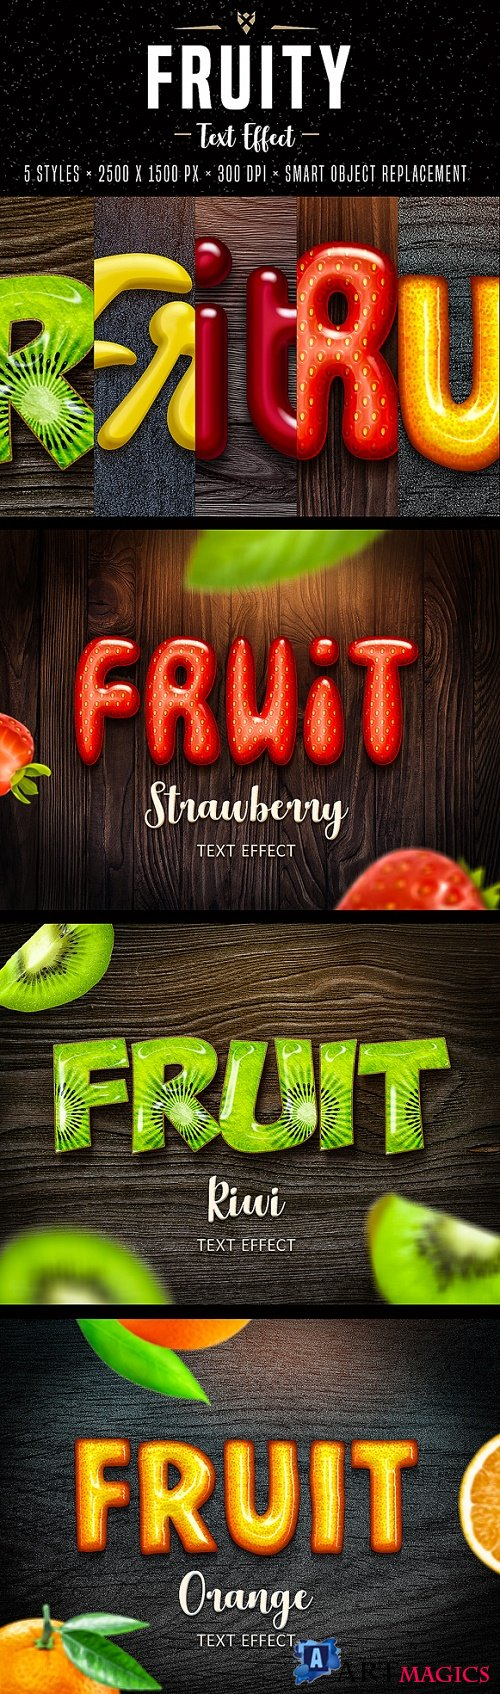 Fruit Text Effects for Photoshop 22177922